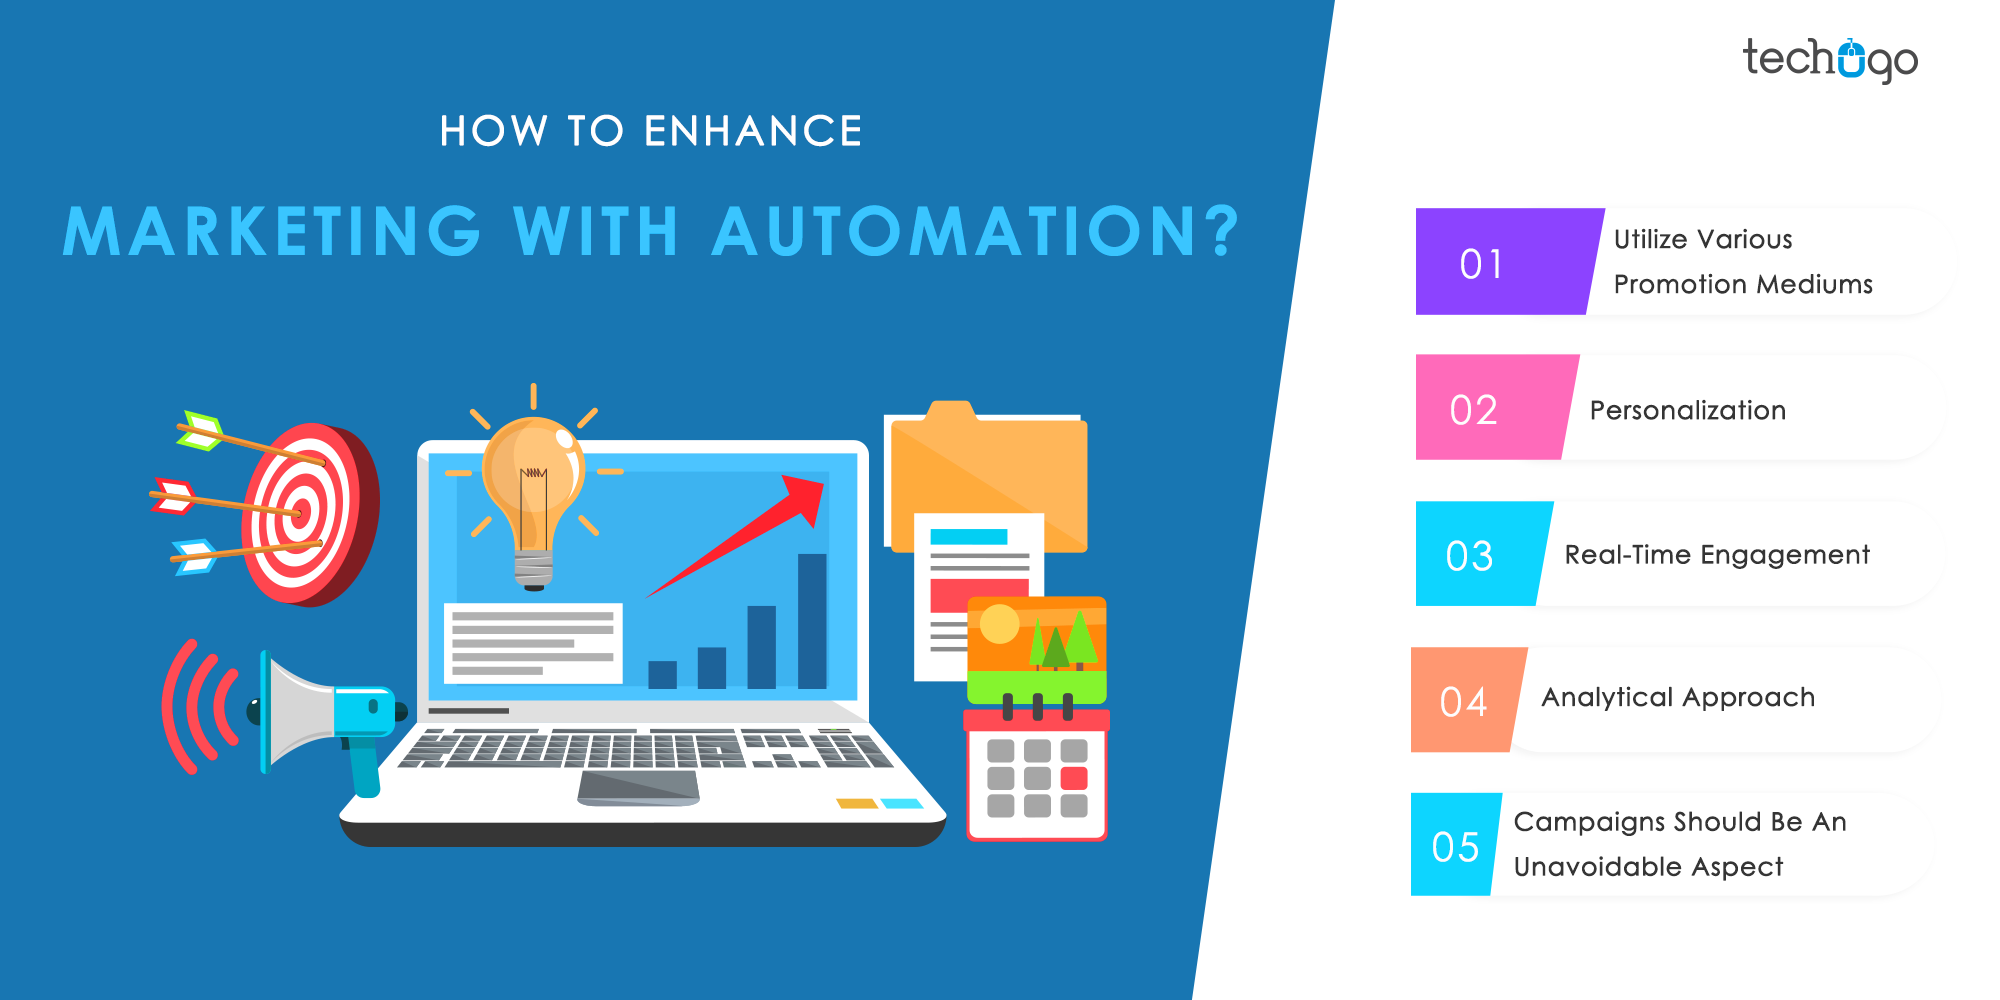 How to Enhance Marketing with Automation?